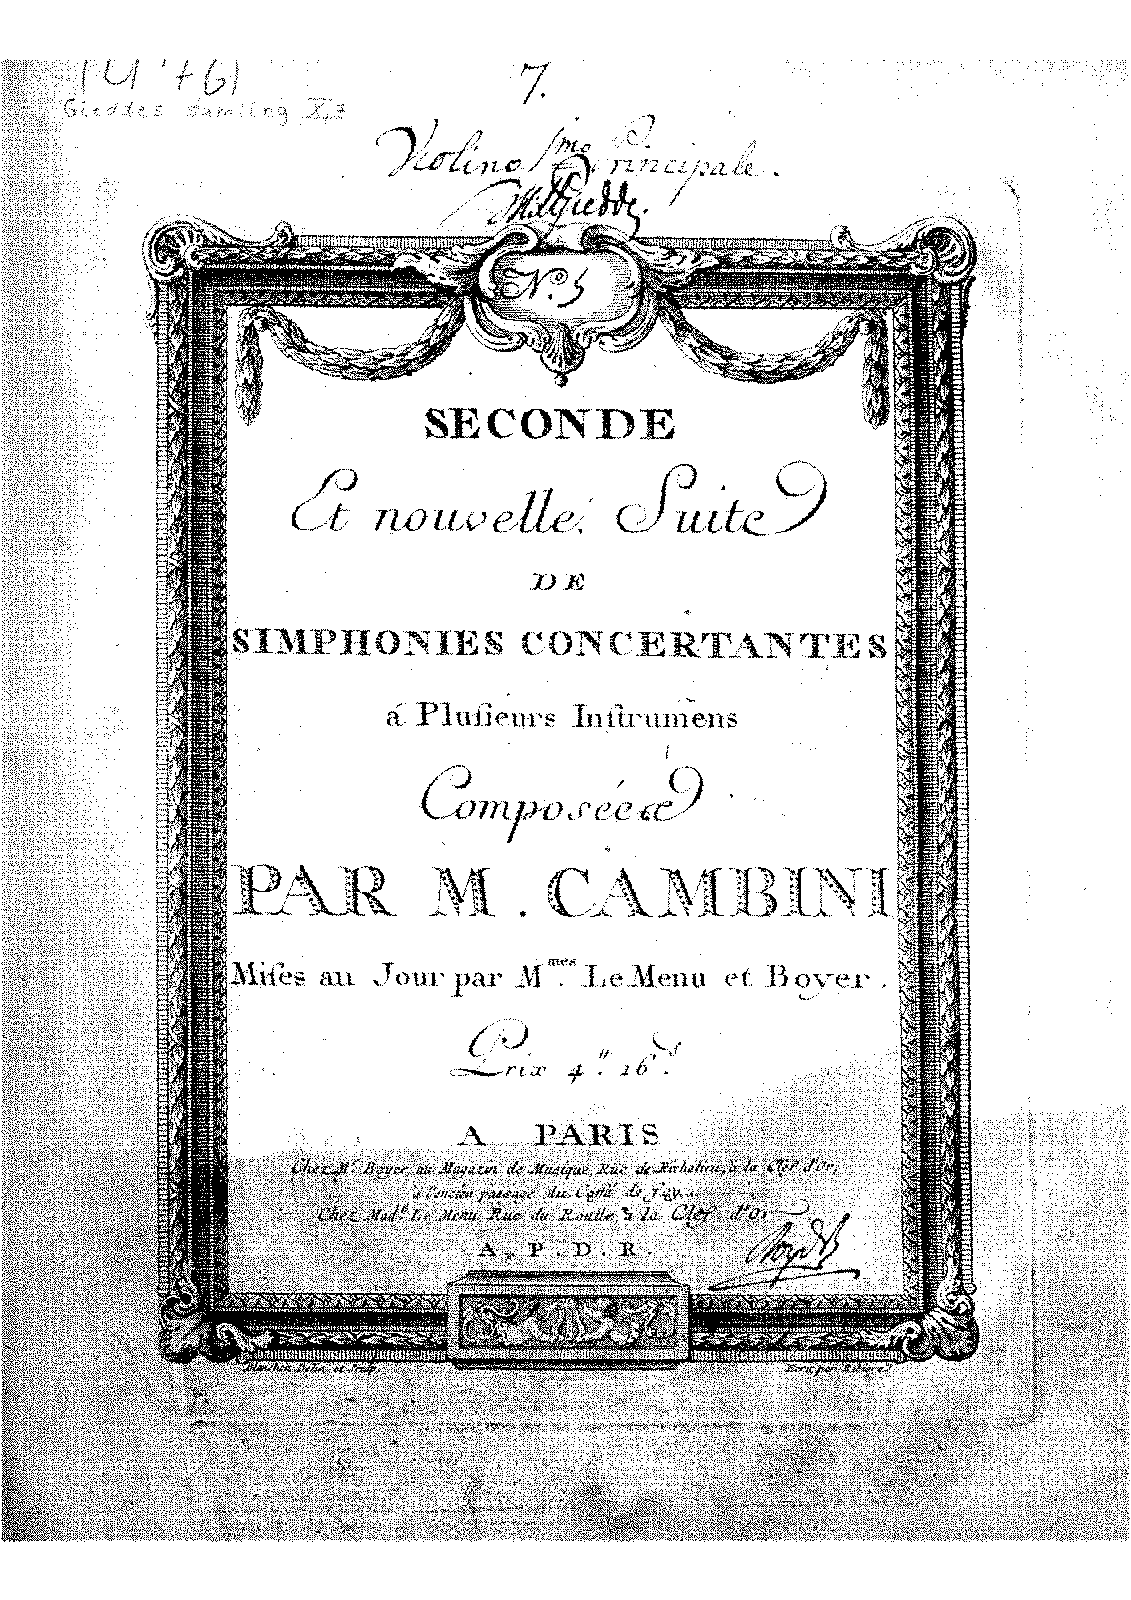 Cambini - Quinta sinfonia concertante - material.pdf